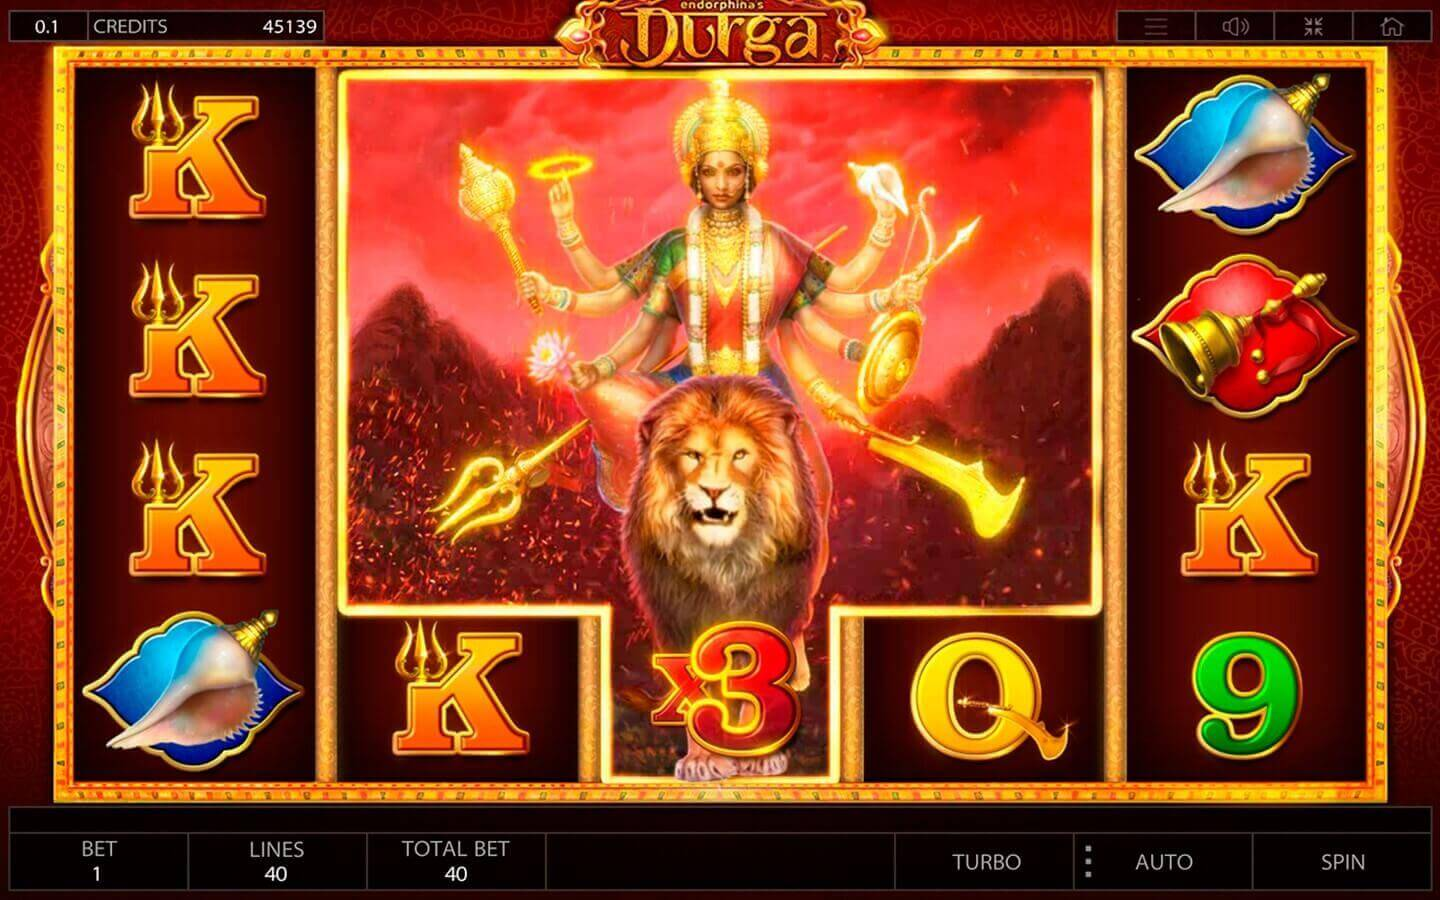 Durga big win